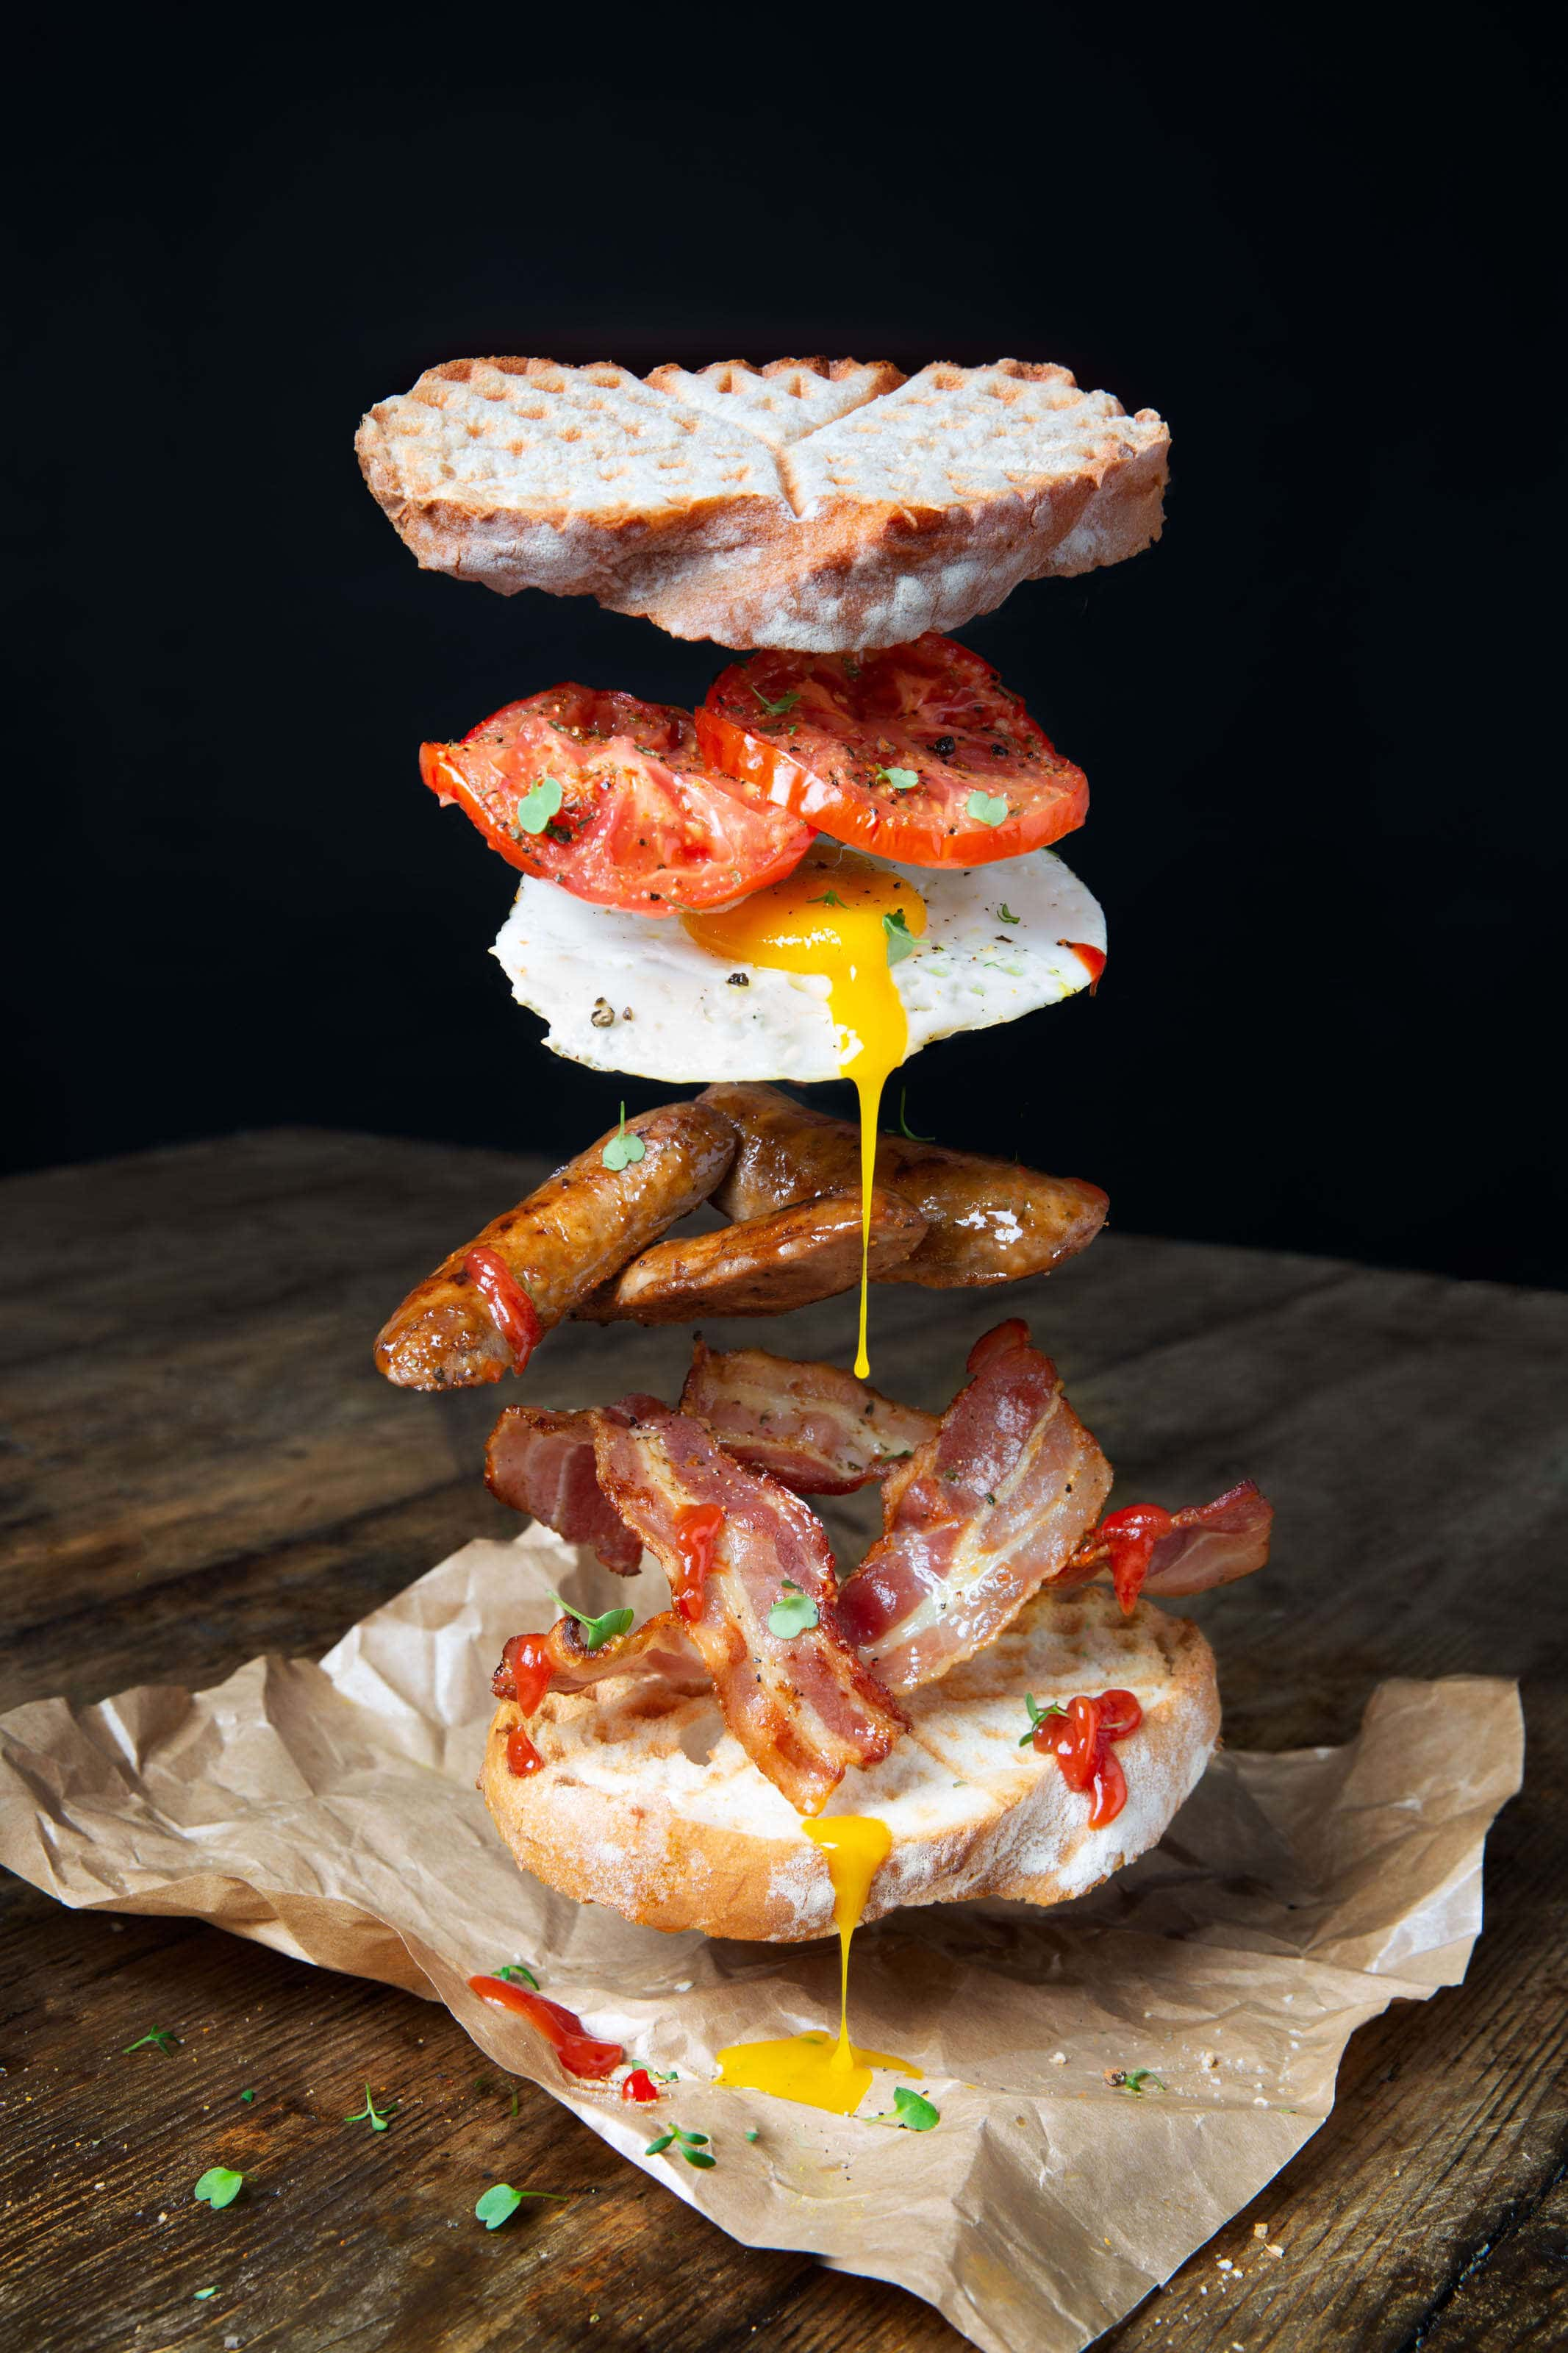 an egg, bacon and sausage sandwich with tomatoes with all ingredients floating above the other. Floating food.